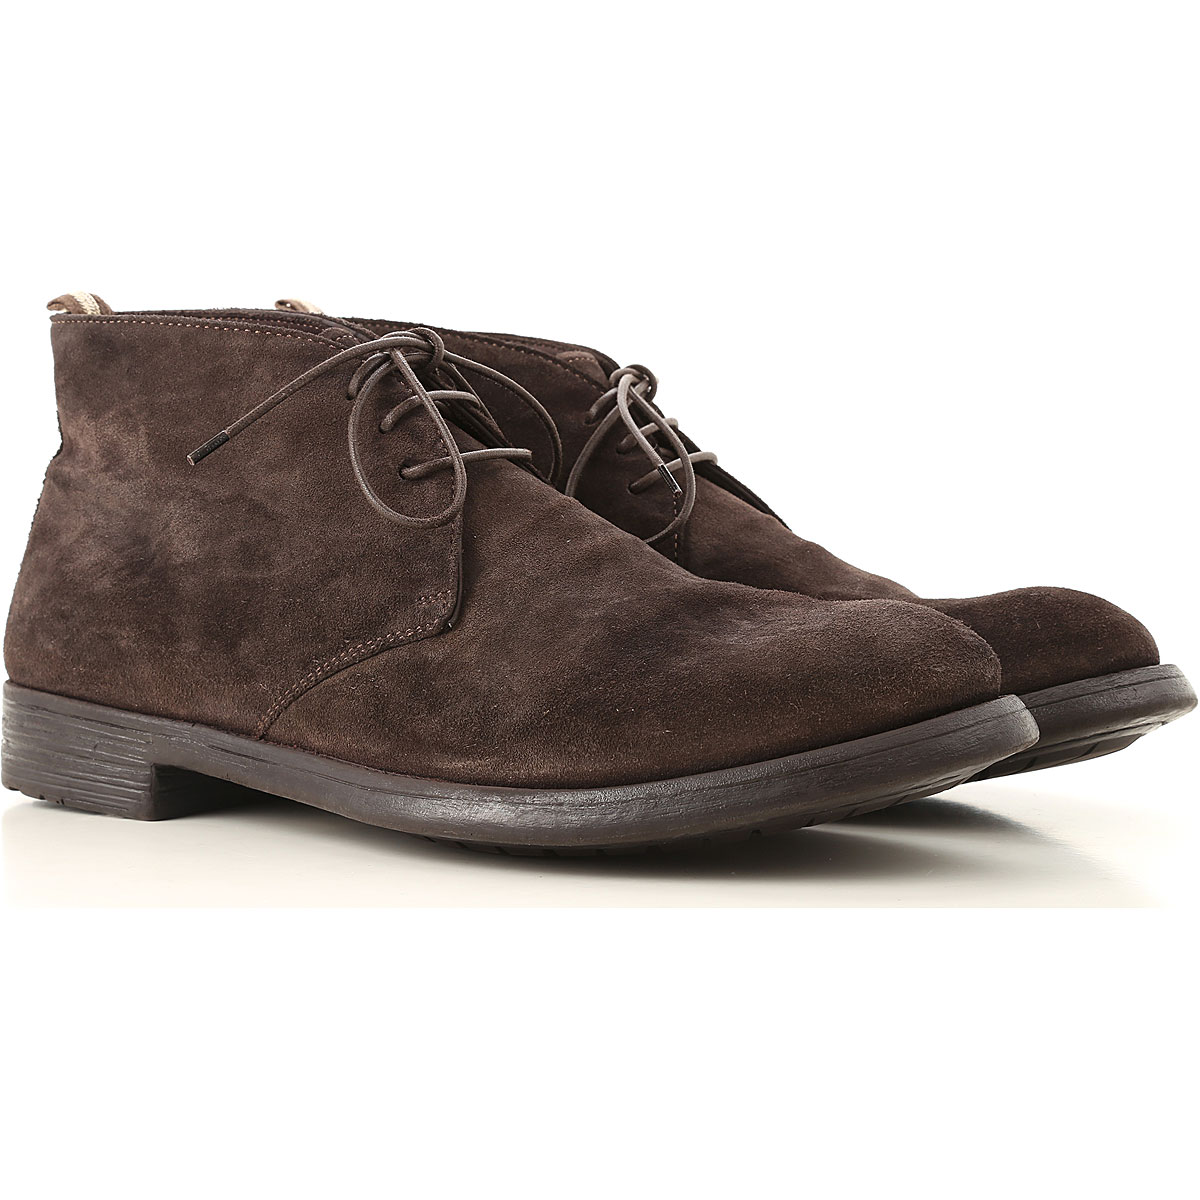 Image of Officine Creative Boots for Men, Booties, Brown, Suede leather, 2017, 10 10.5 7.5 8 9